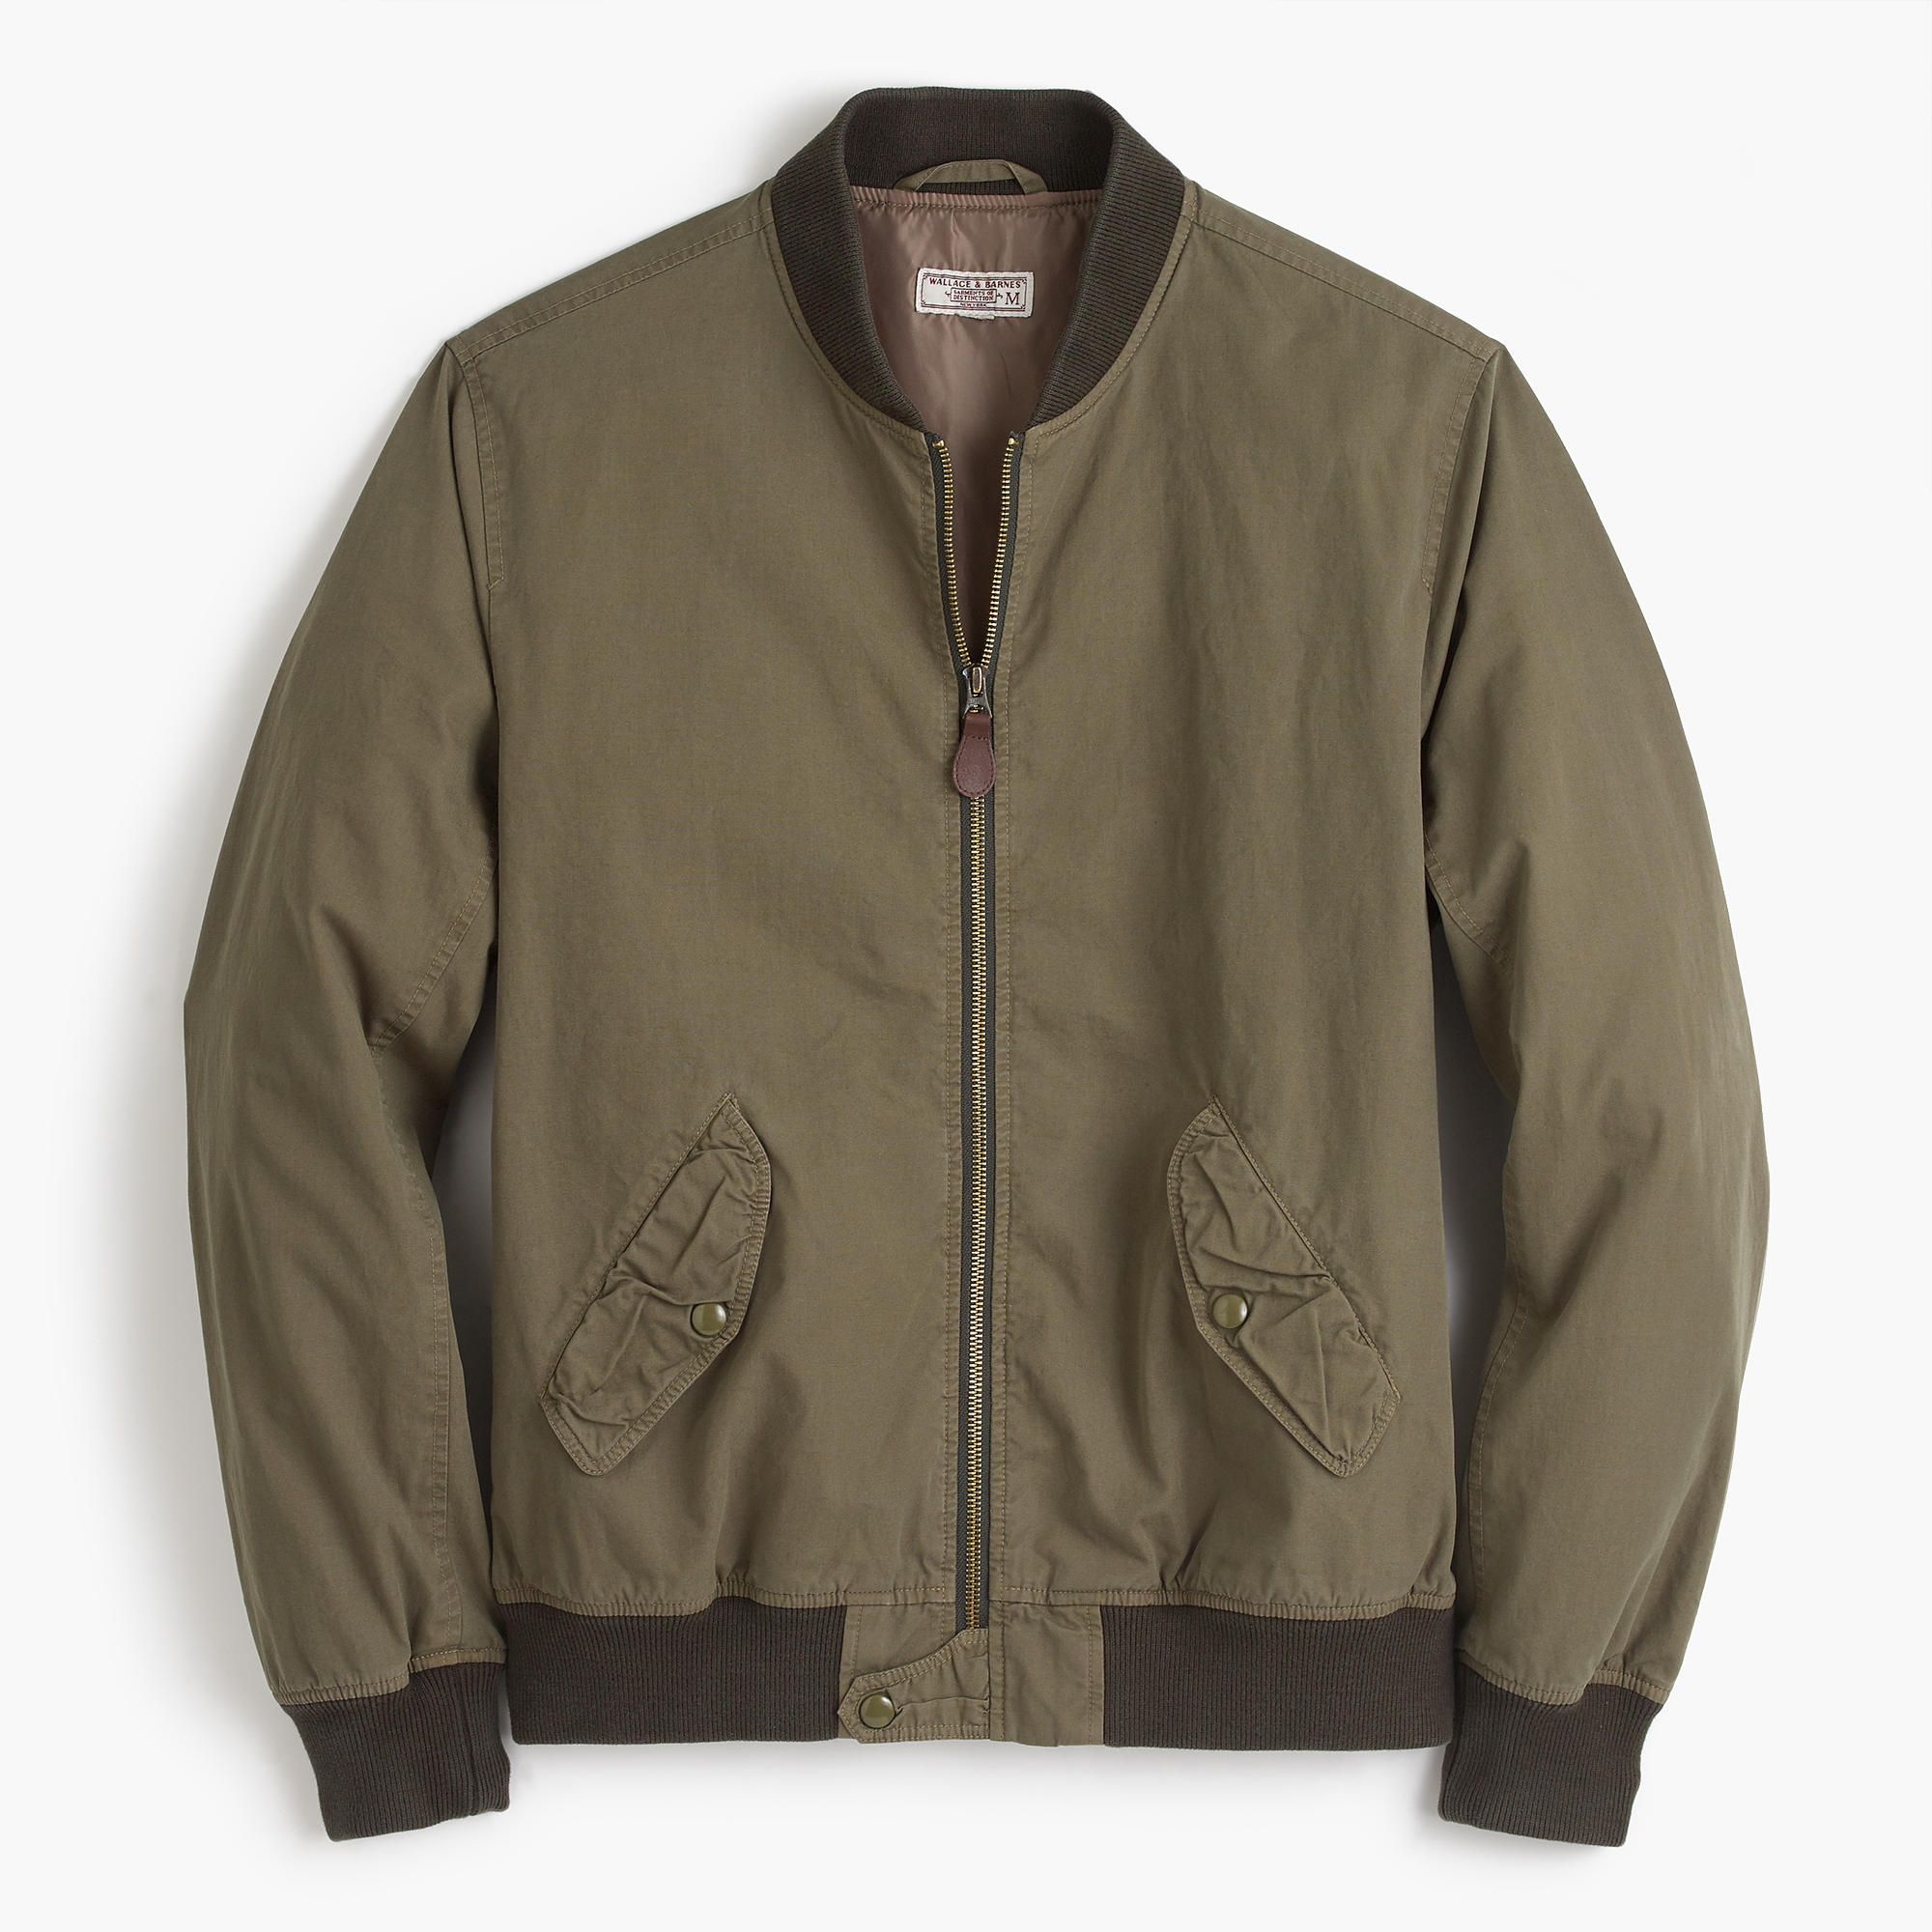 The MA1 bomber is the style that probably comes to mind